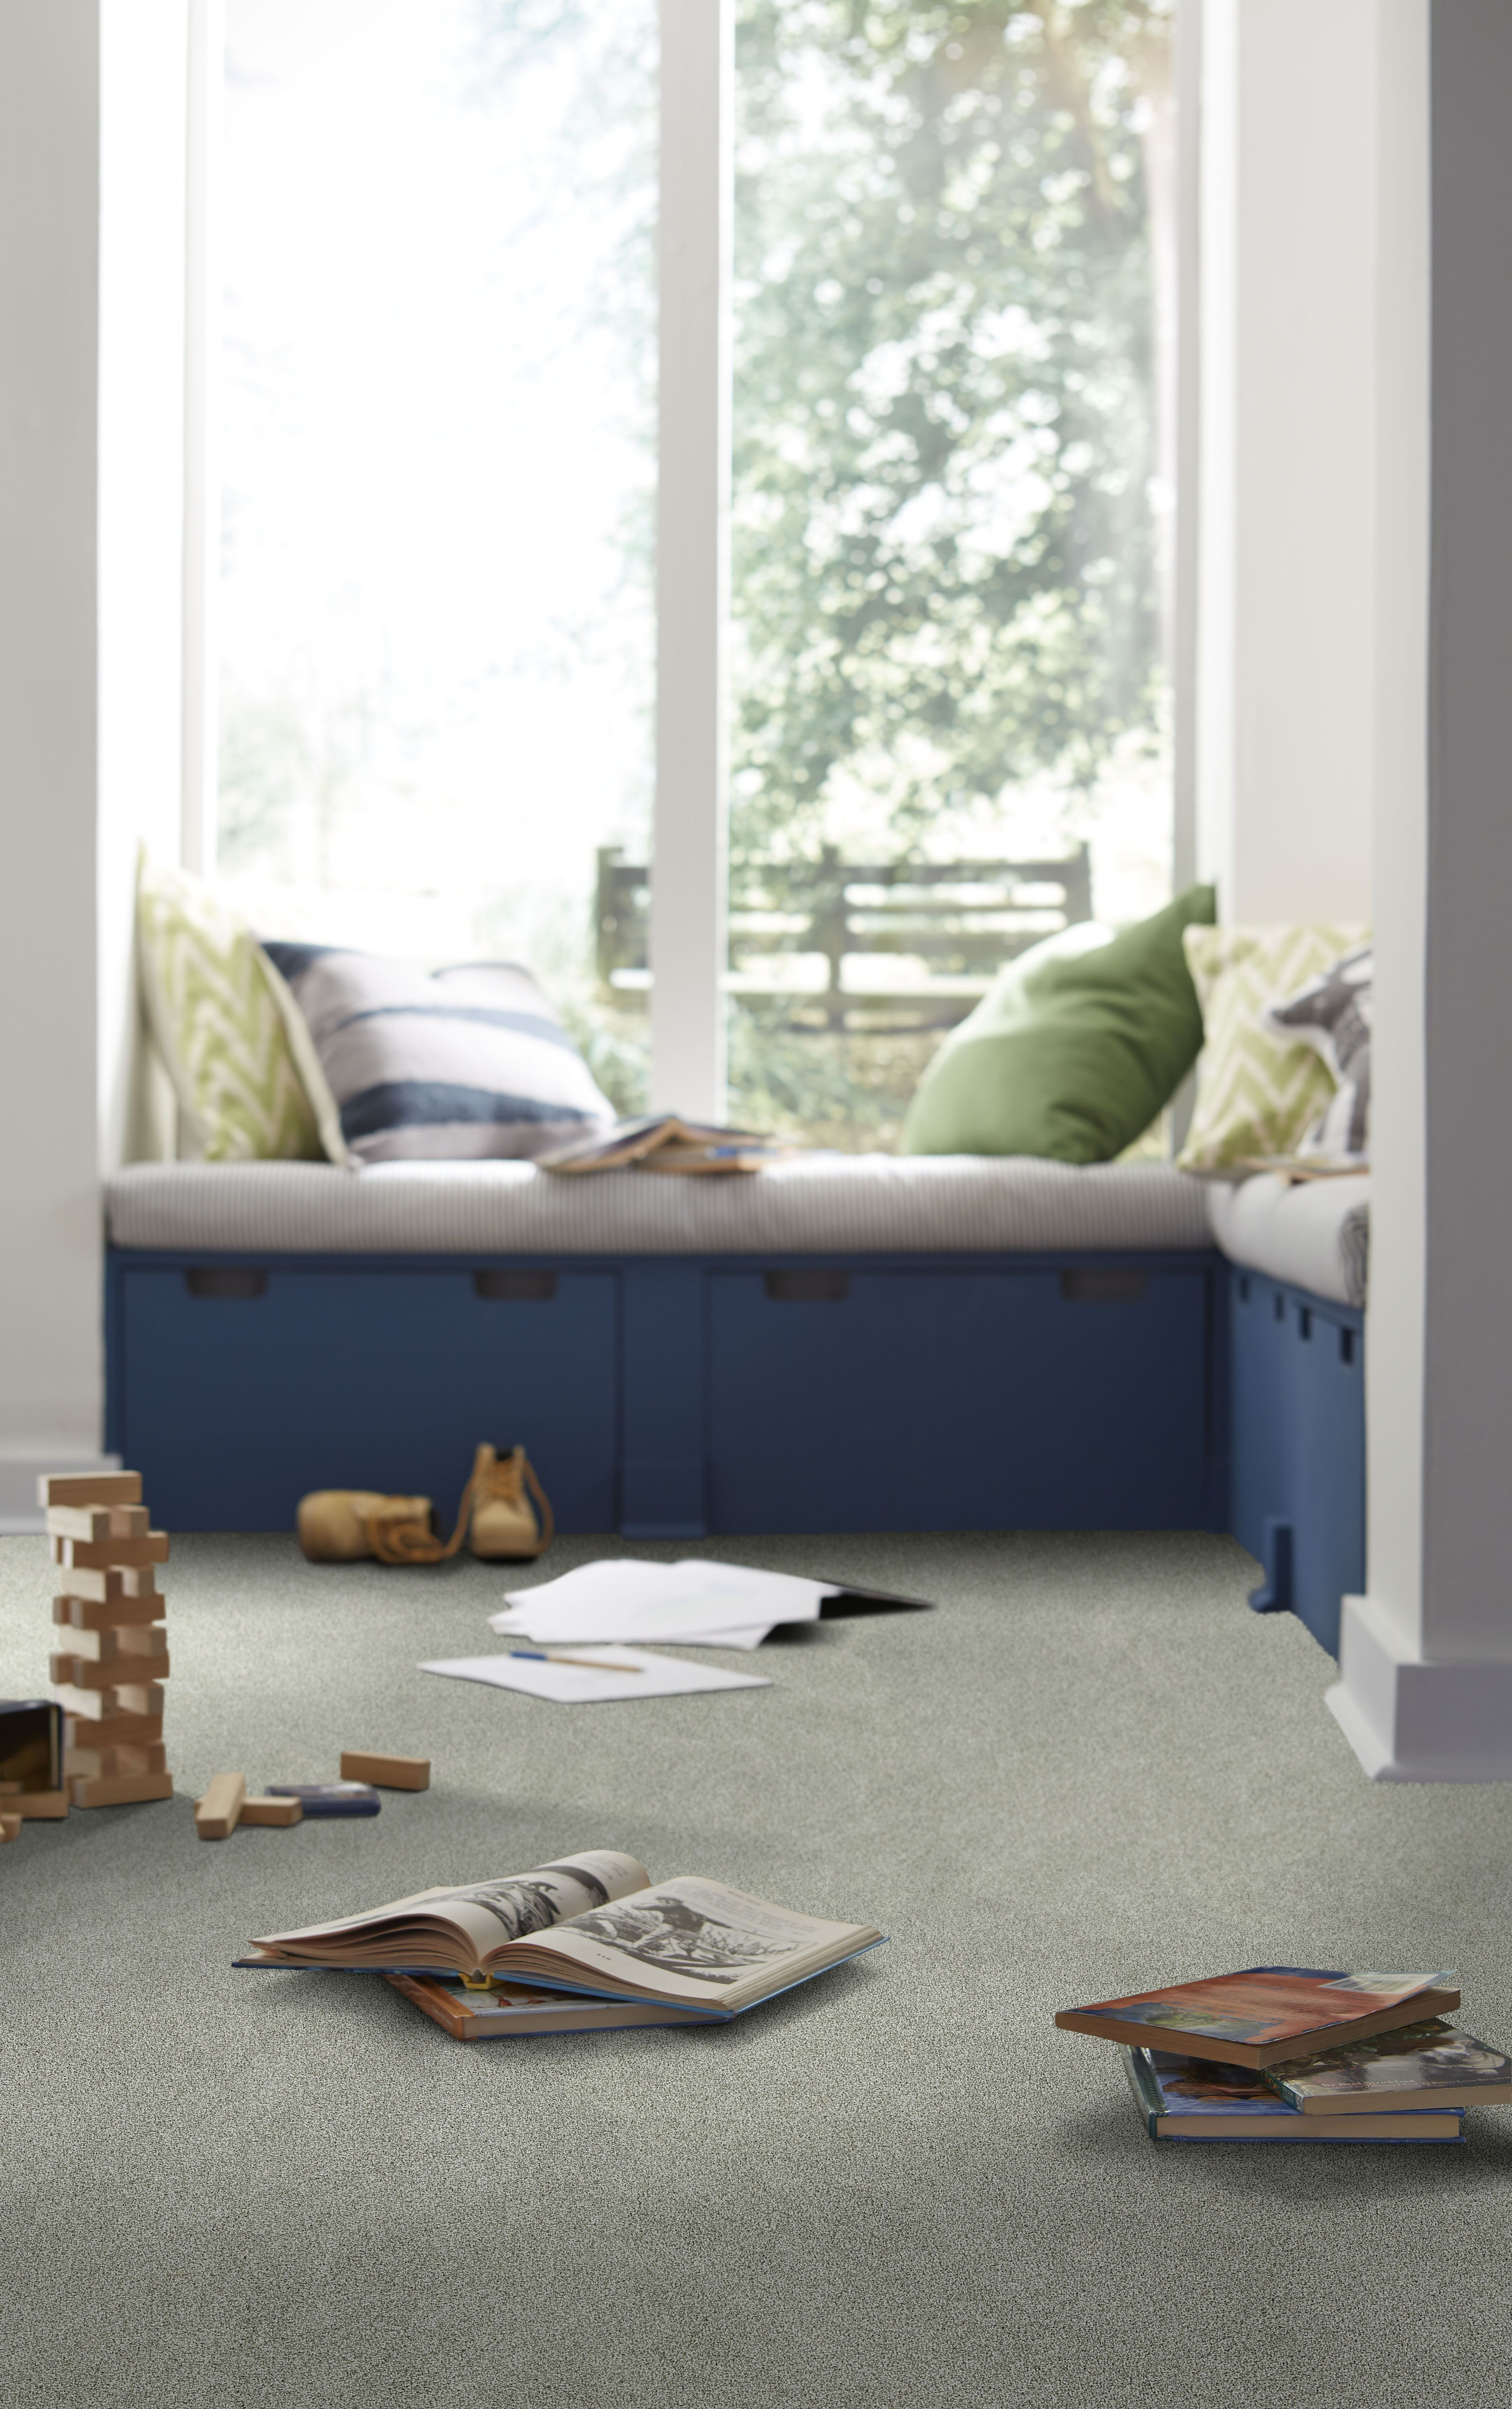 Bright Blues And Greens Are Perfect For The Kids Room,